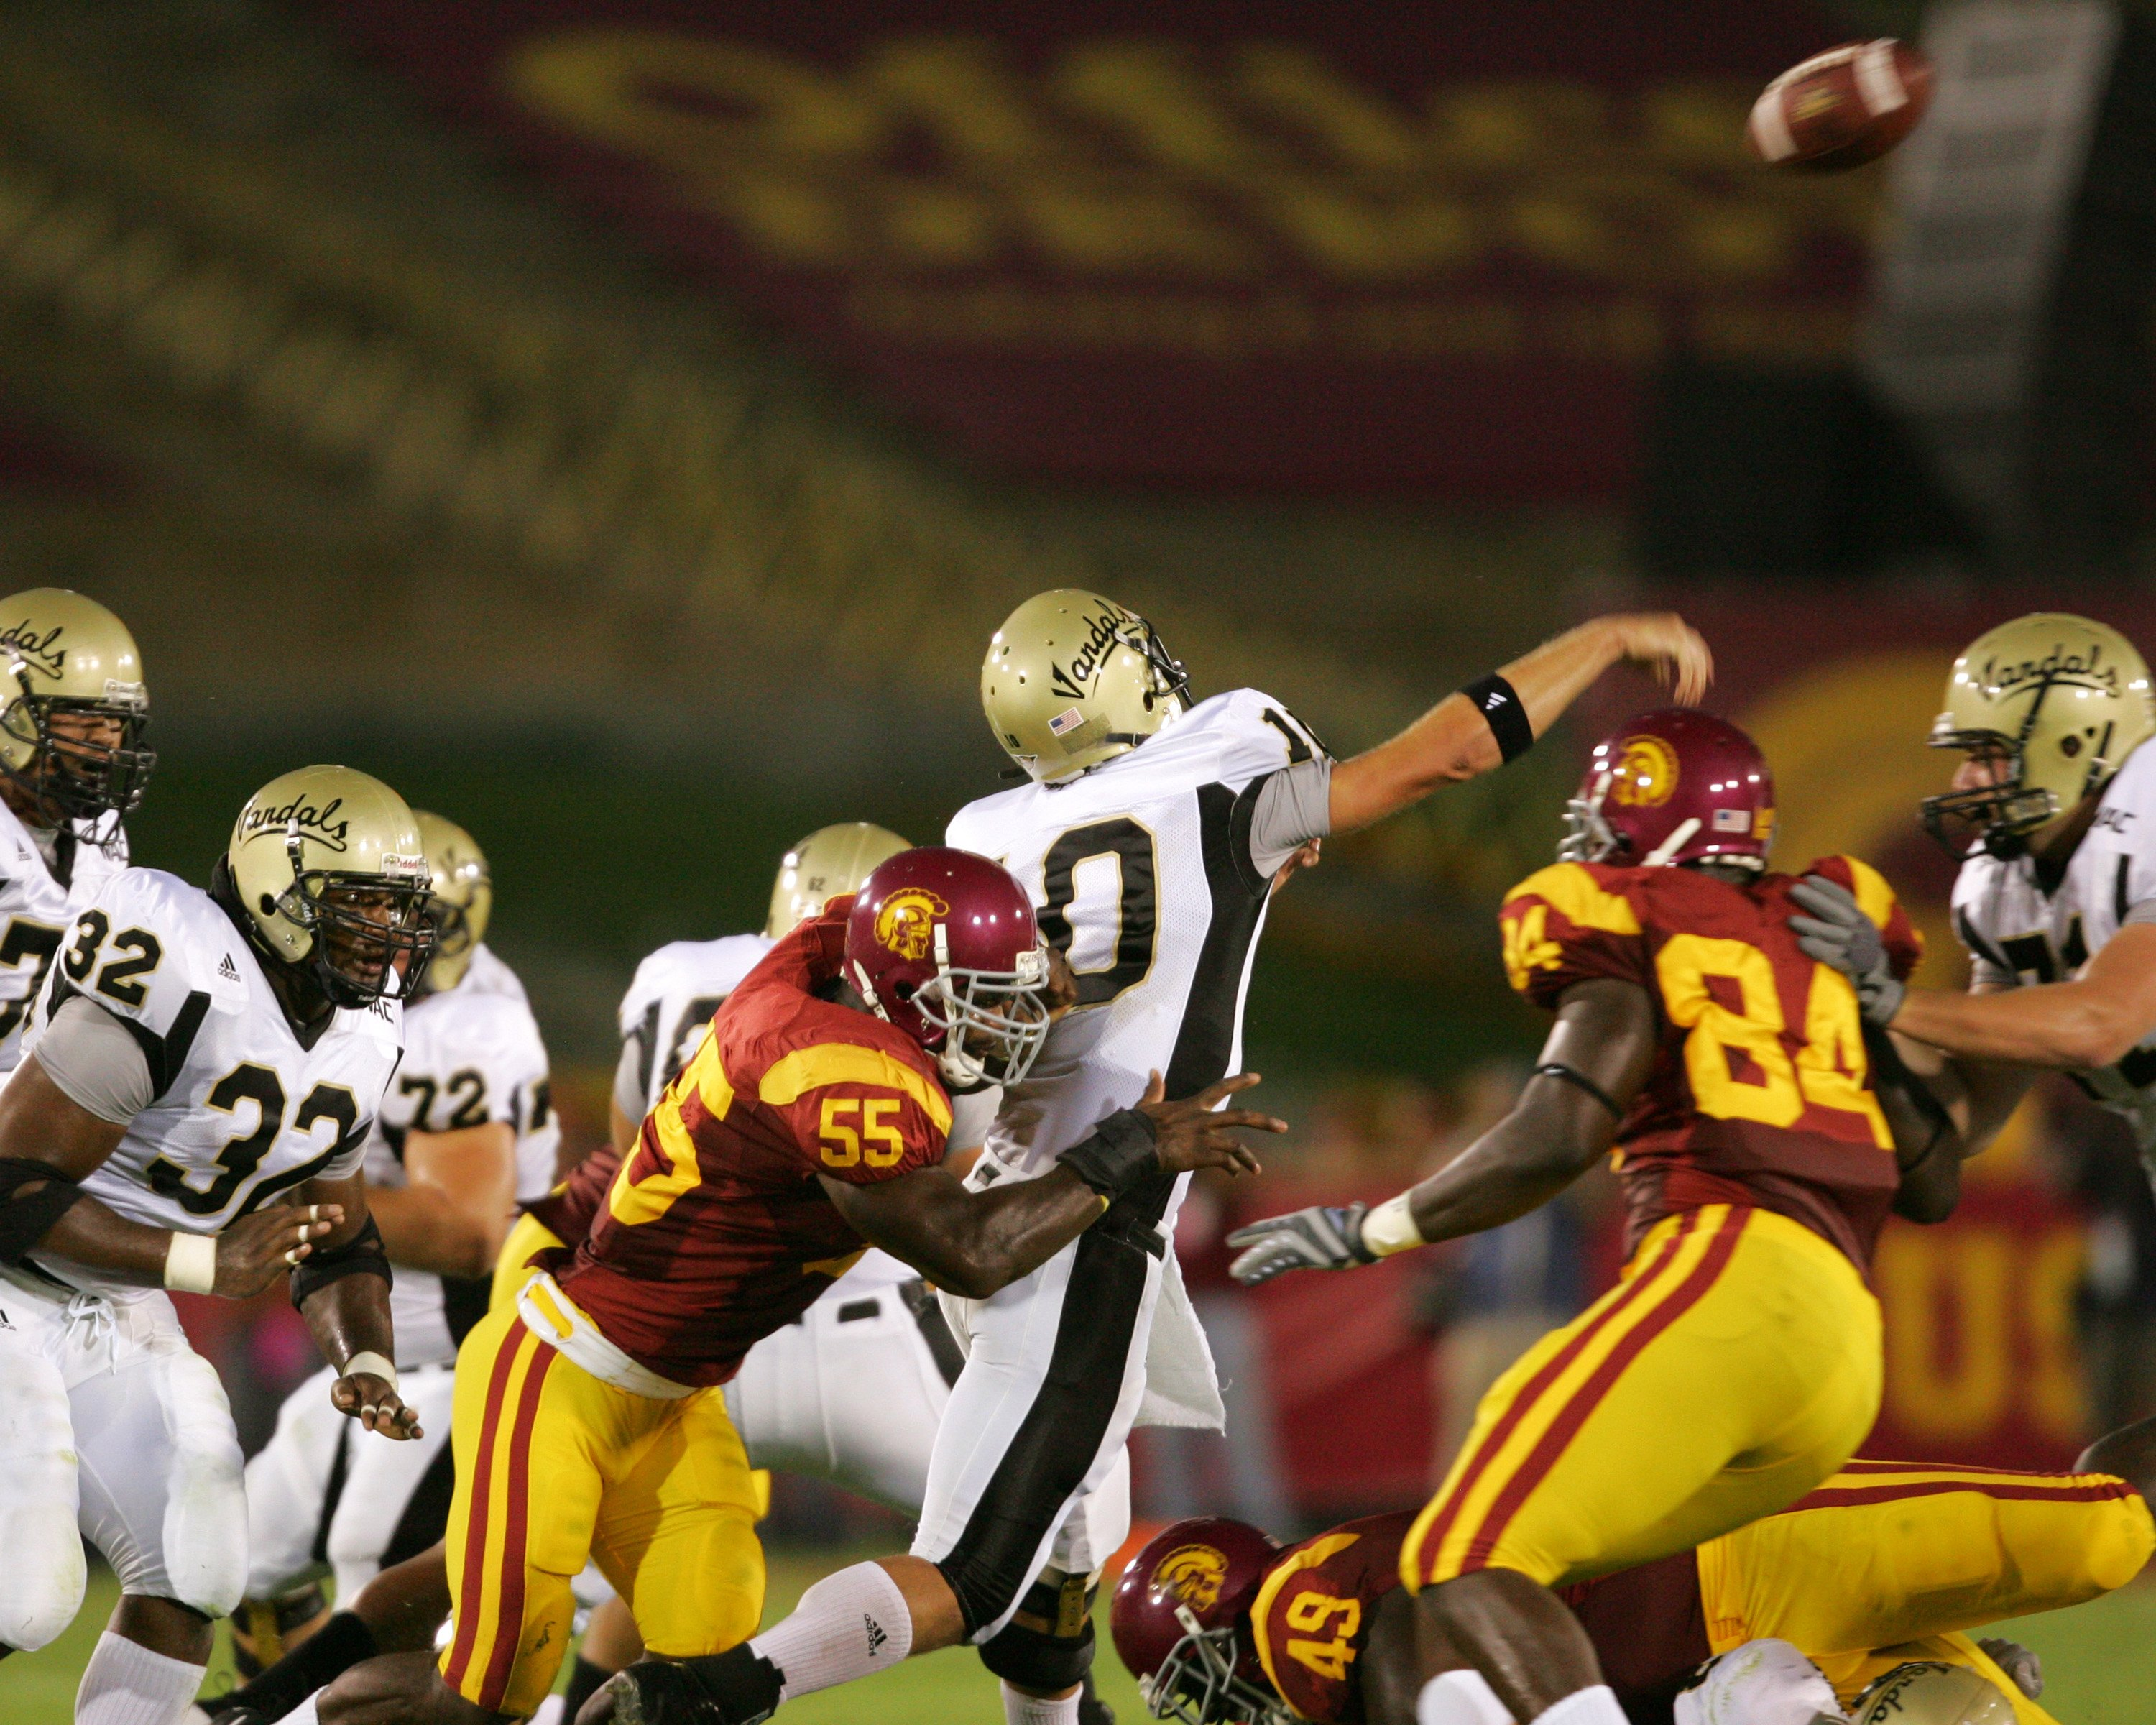 LOS ANGELES - SEPTEMBER 1:  USC linebacker Keith Rivers #55 unloads on Idaho quarterback Nate Enderle #10 in the top-ranked Trojans 38-10 win over the Vandals at the Los Angeles Memorial Coliseum on September 1, 2007 in Los Angeles, California. The top-ra